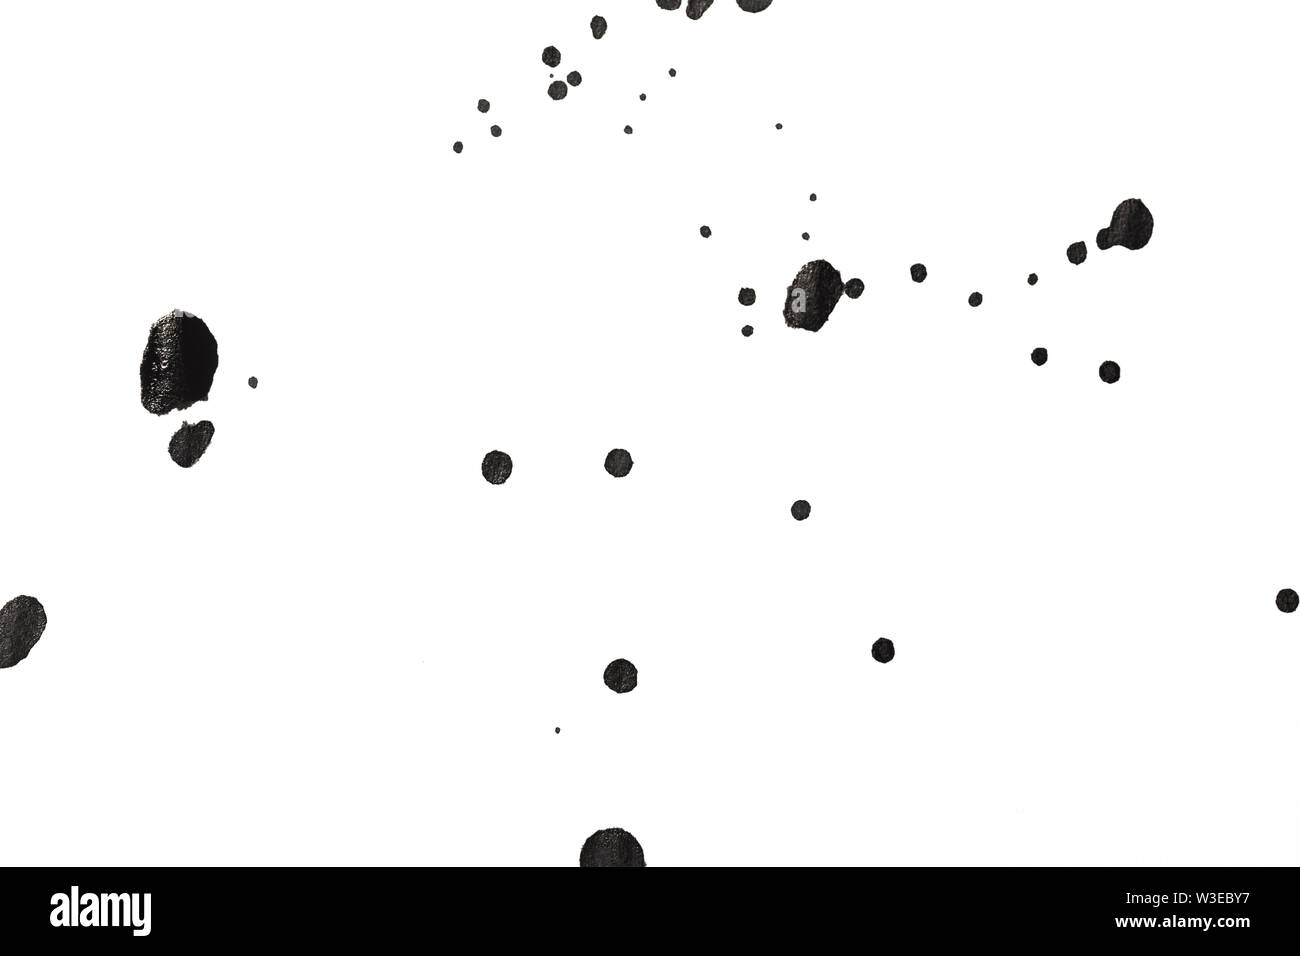 ink blot on the white background - Stock Image